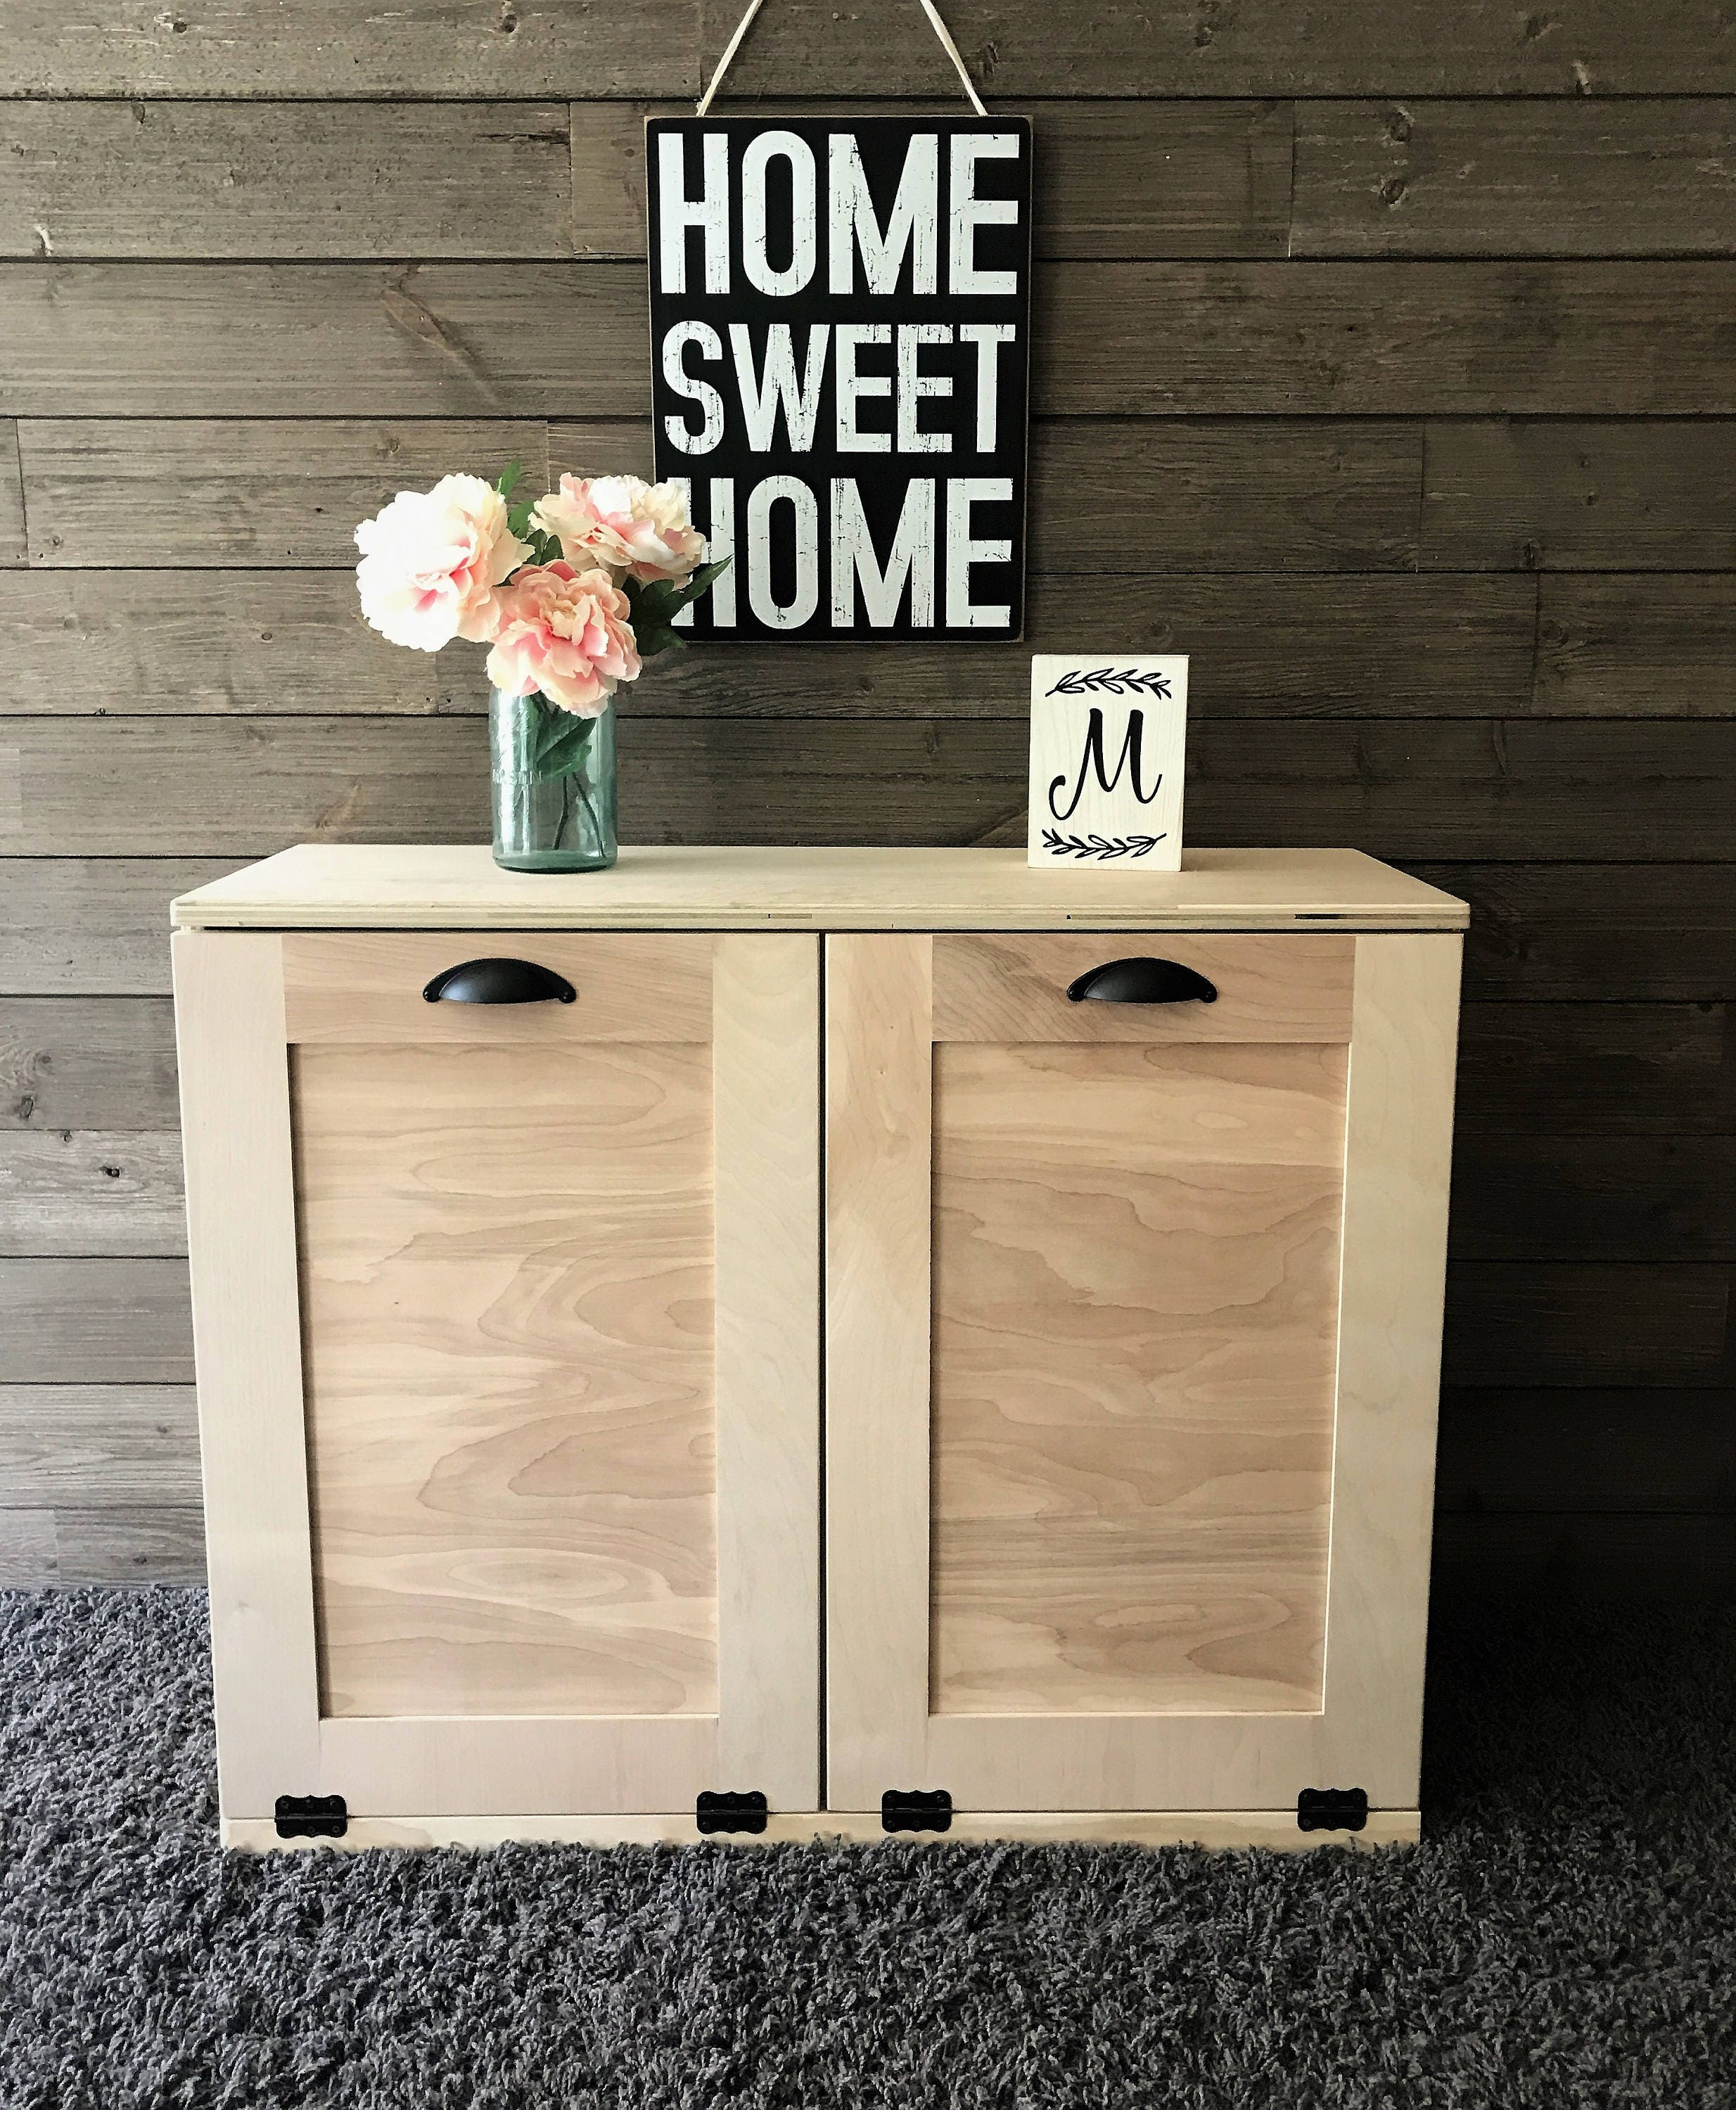 Stupendous Free Ship Double Tilt Trash Bin Recycle Bins Rustic Tilt Out Trash Bin Trash Can D Raw Download Free Architecture Designs Sospemadebymaigaardcom